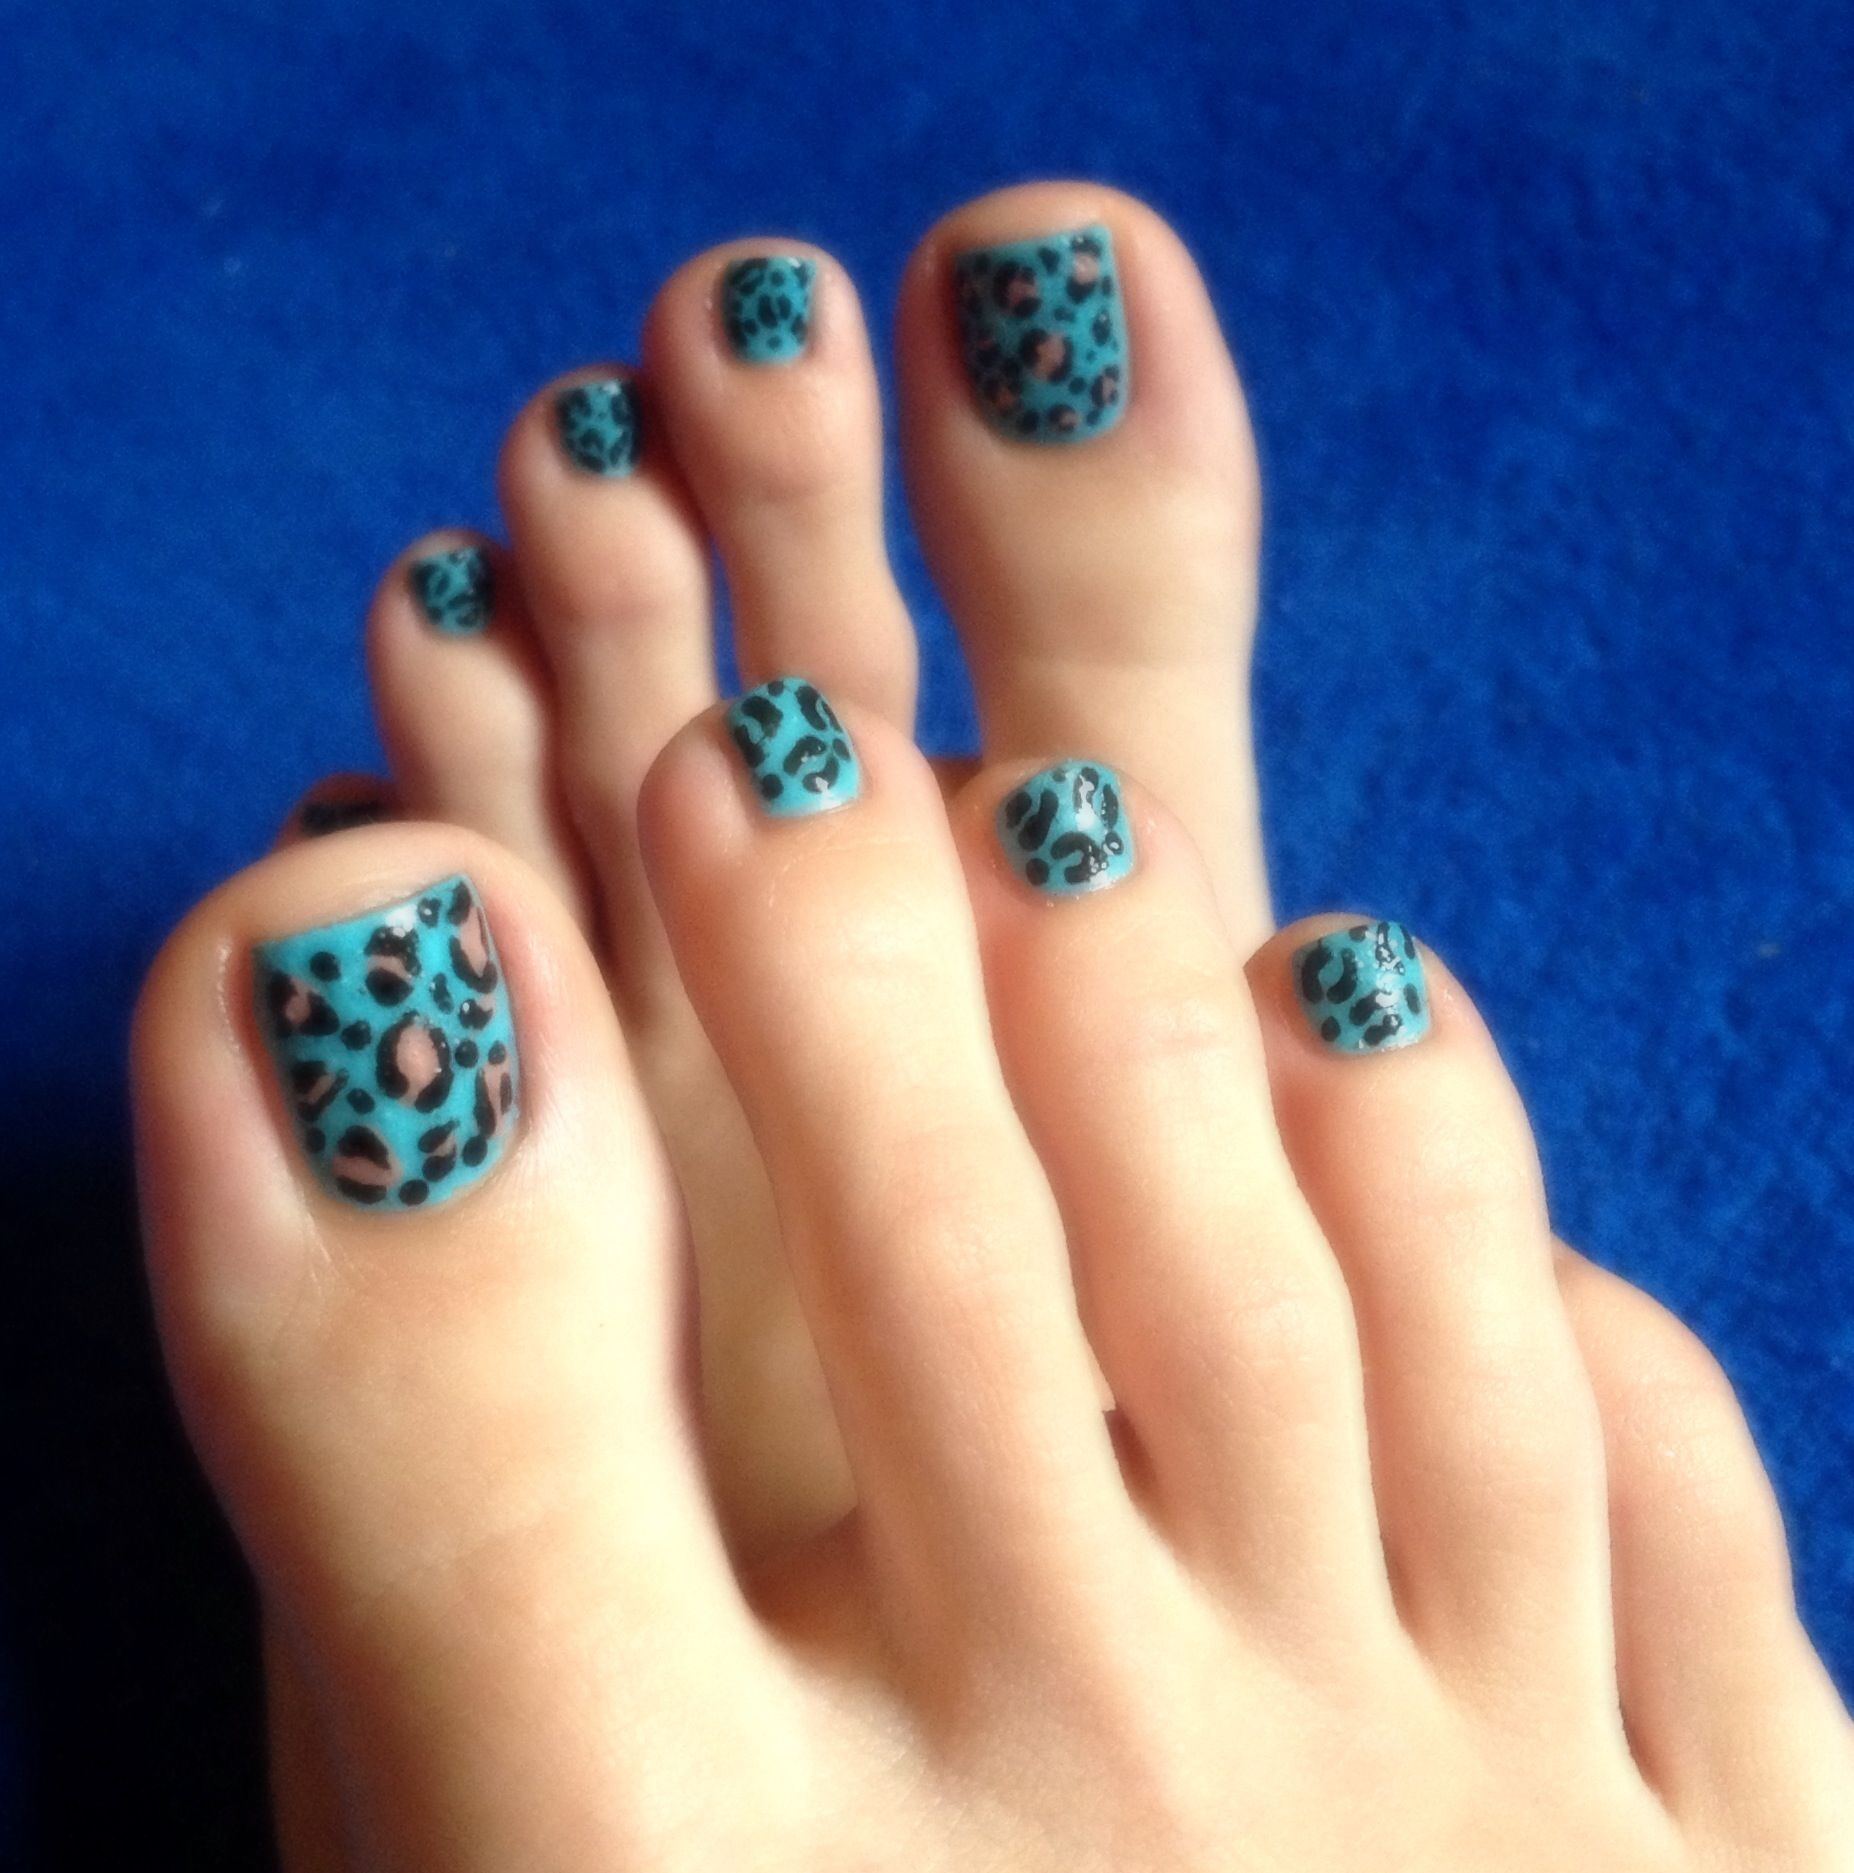 cheetah print nail art design, toenails, turquoise polish, animal ...